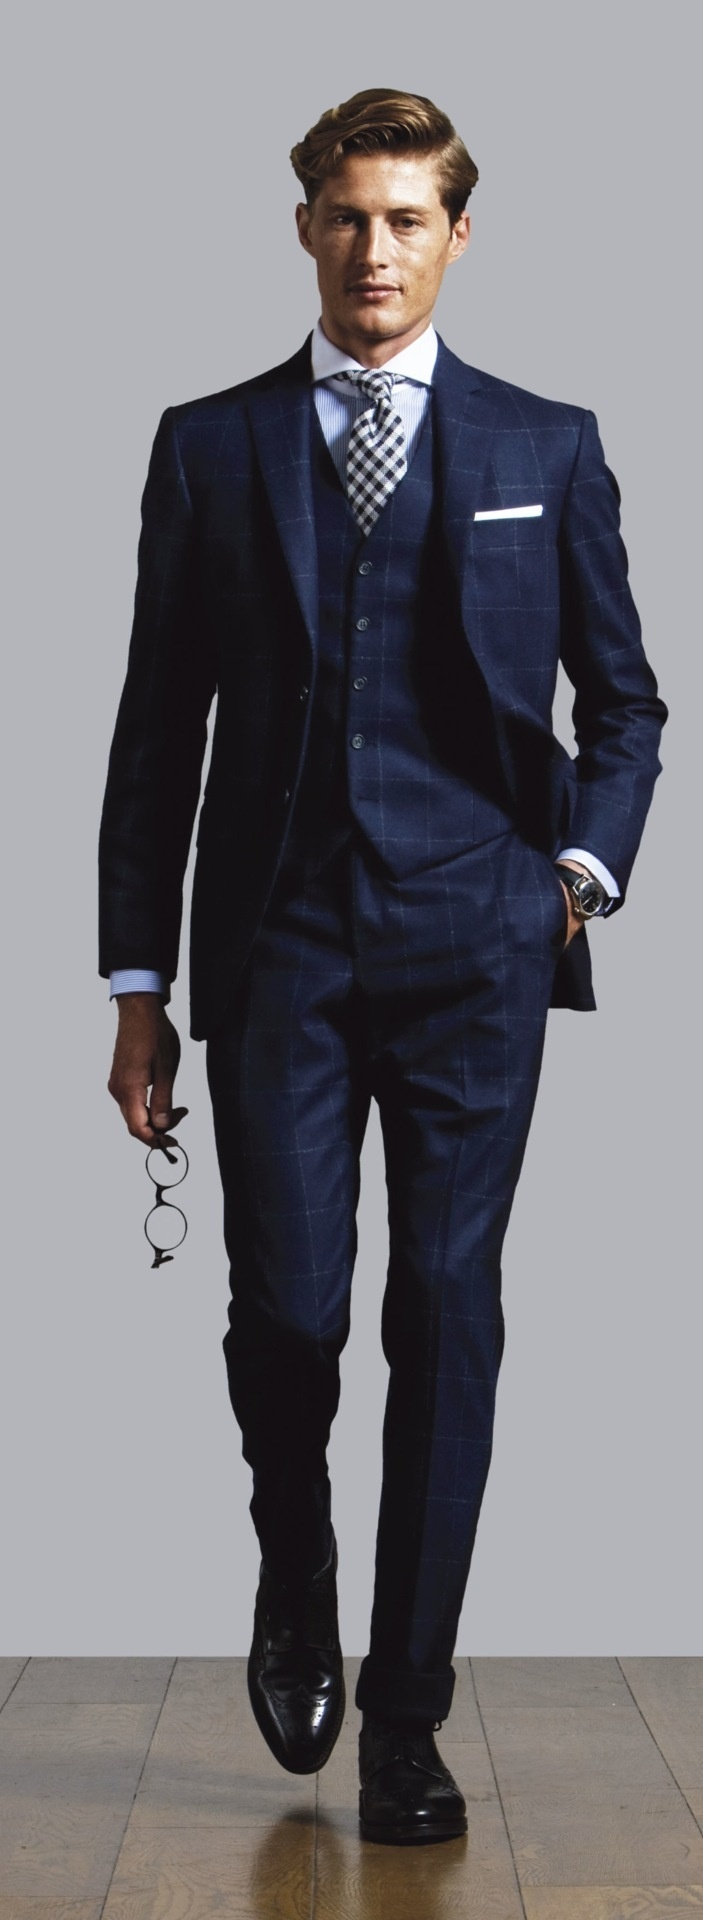 Black dress navy suit - Find This Pin And More On Prom